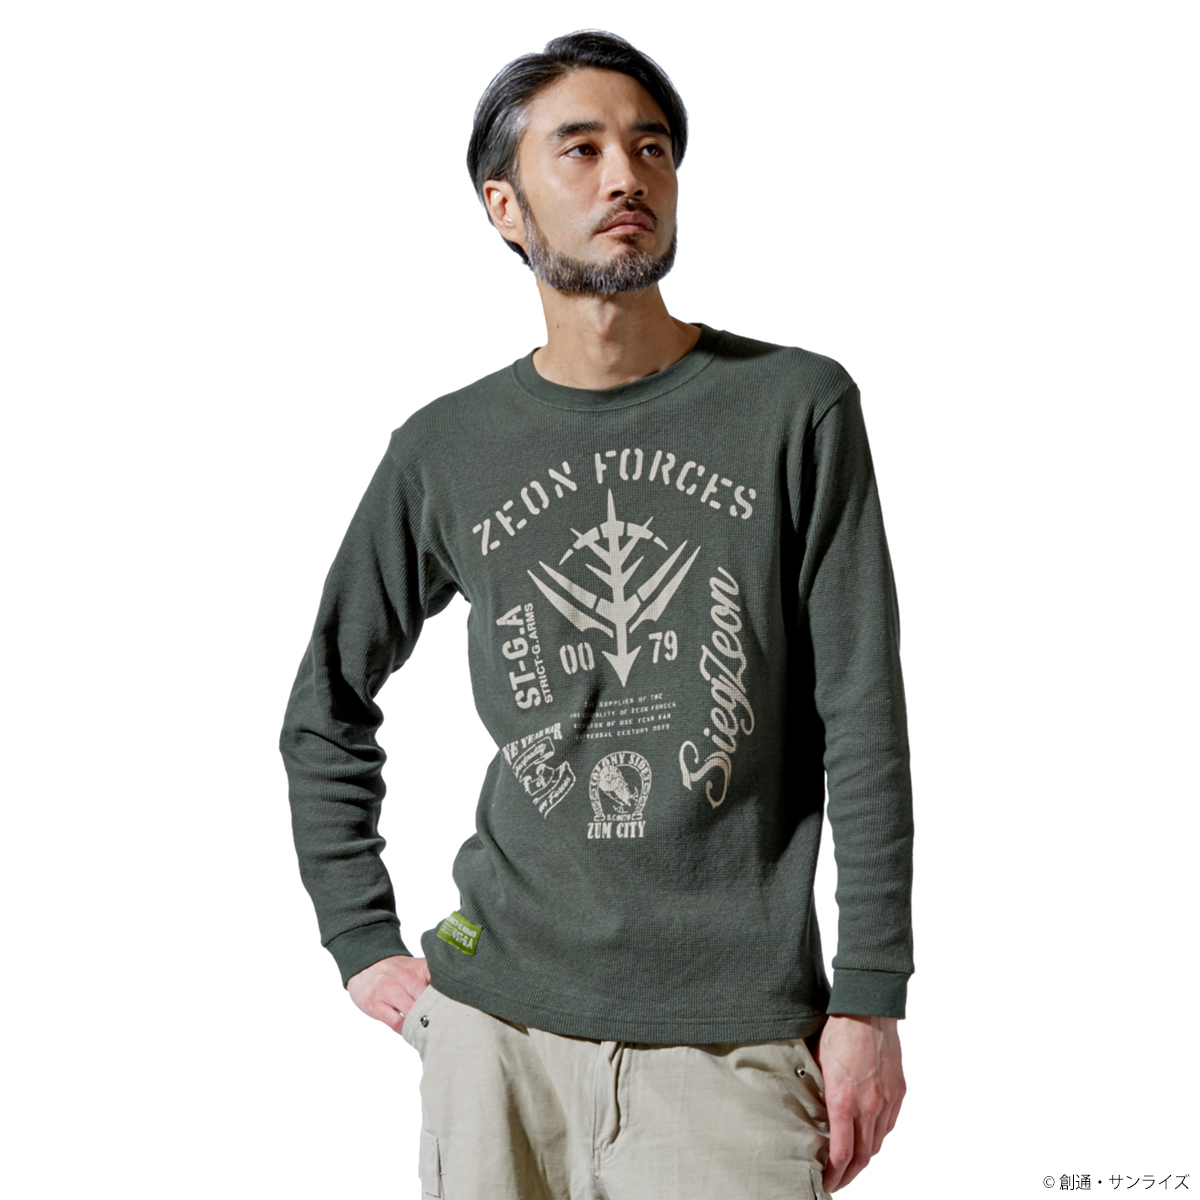 STRICT-G.ARMS『機動戦士ガンダム』ワッフル長袖Tシャツ ZEON FORCES